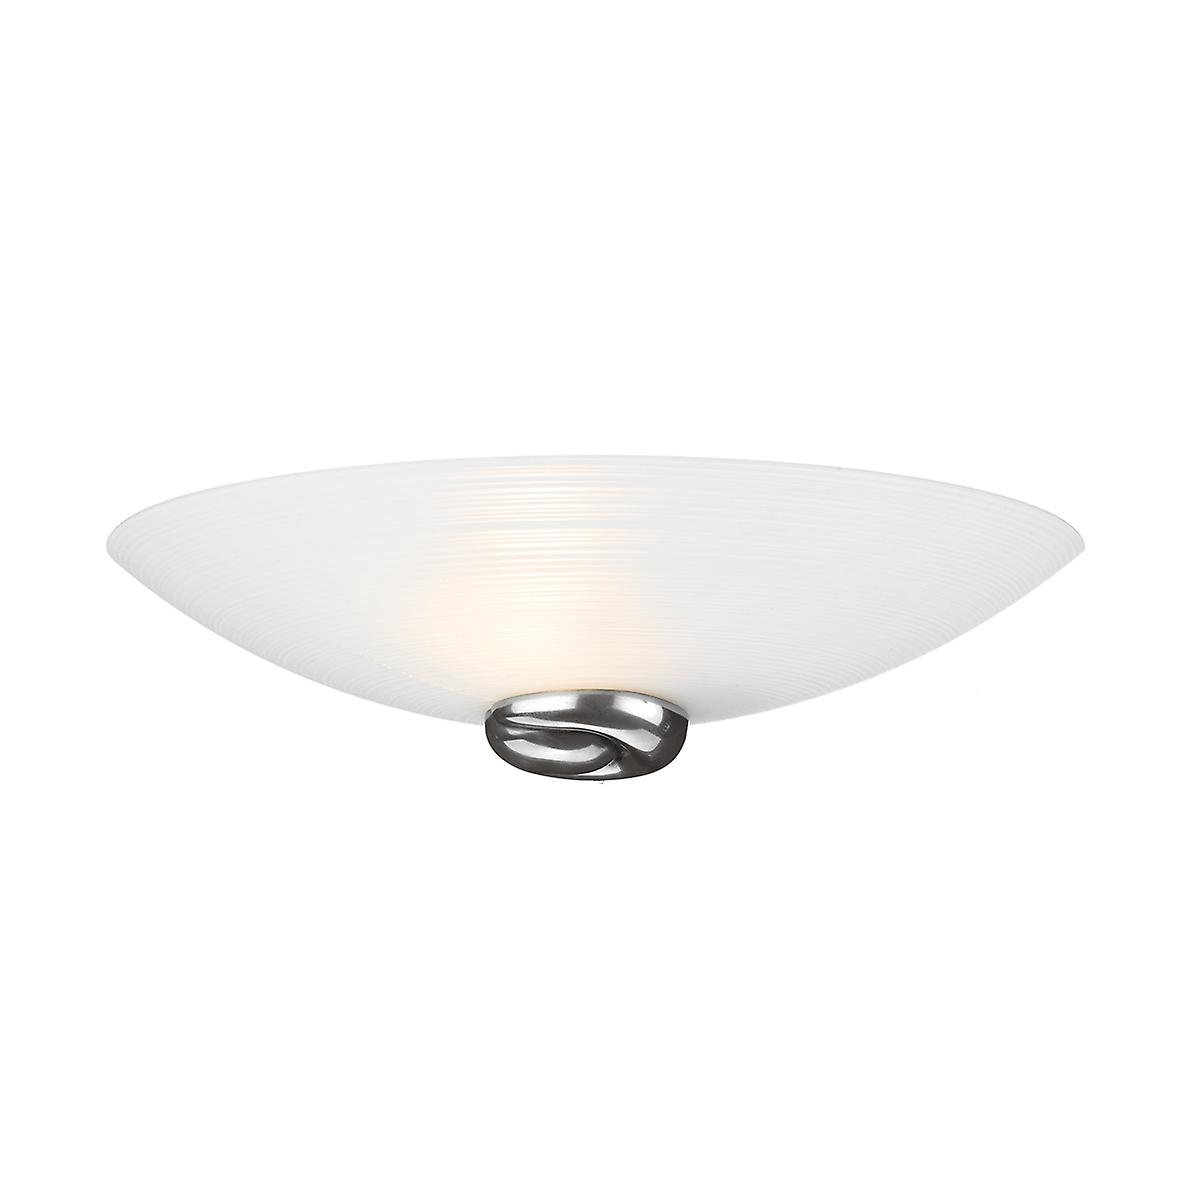 David Hunt SWW0767 Swirl Wall Washer In A Pewter Finish With Italian White Glass